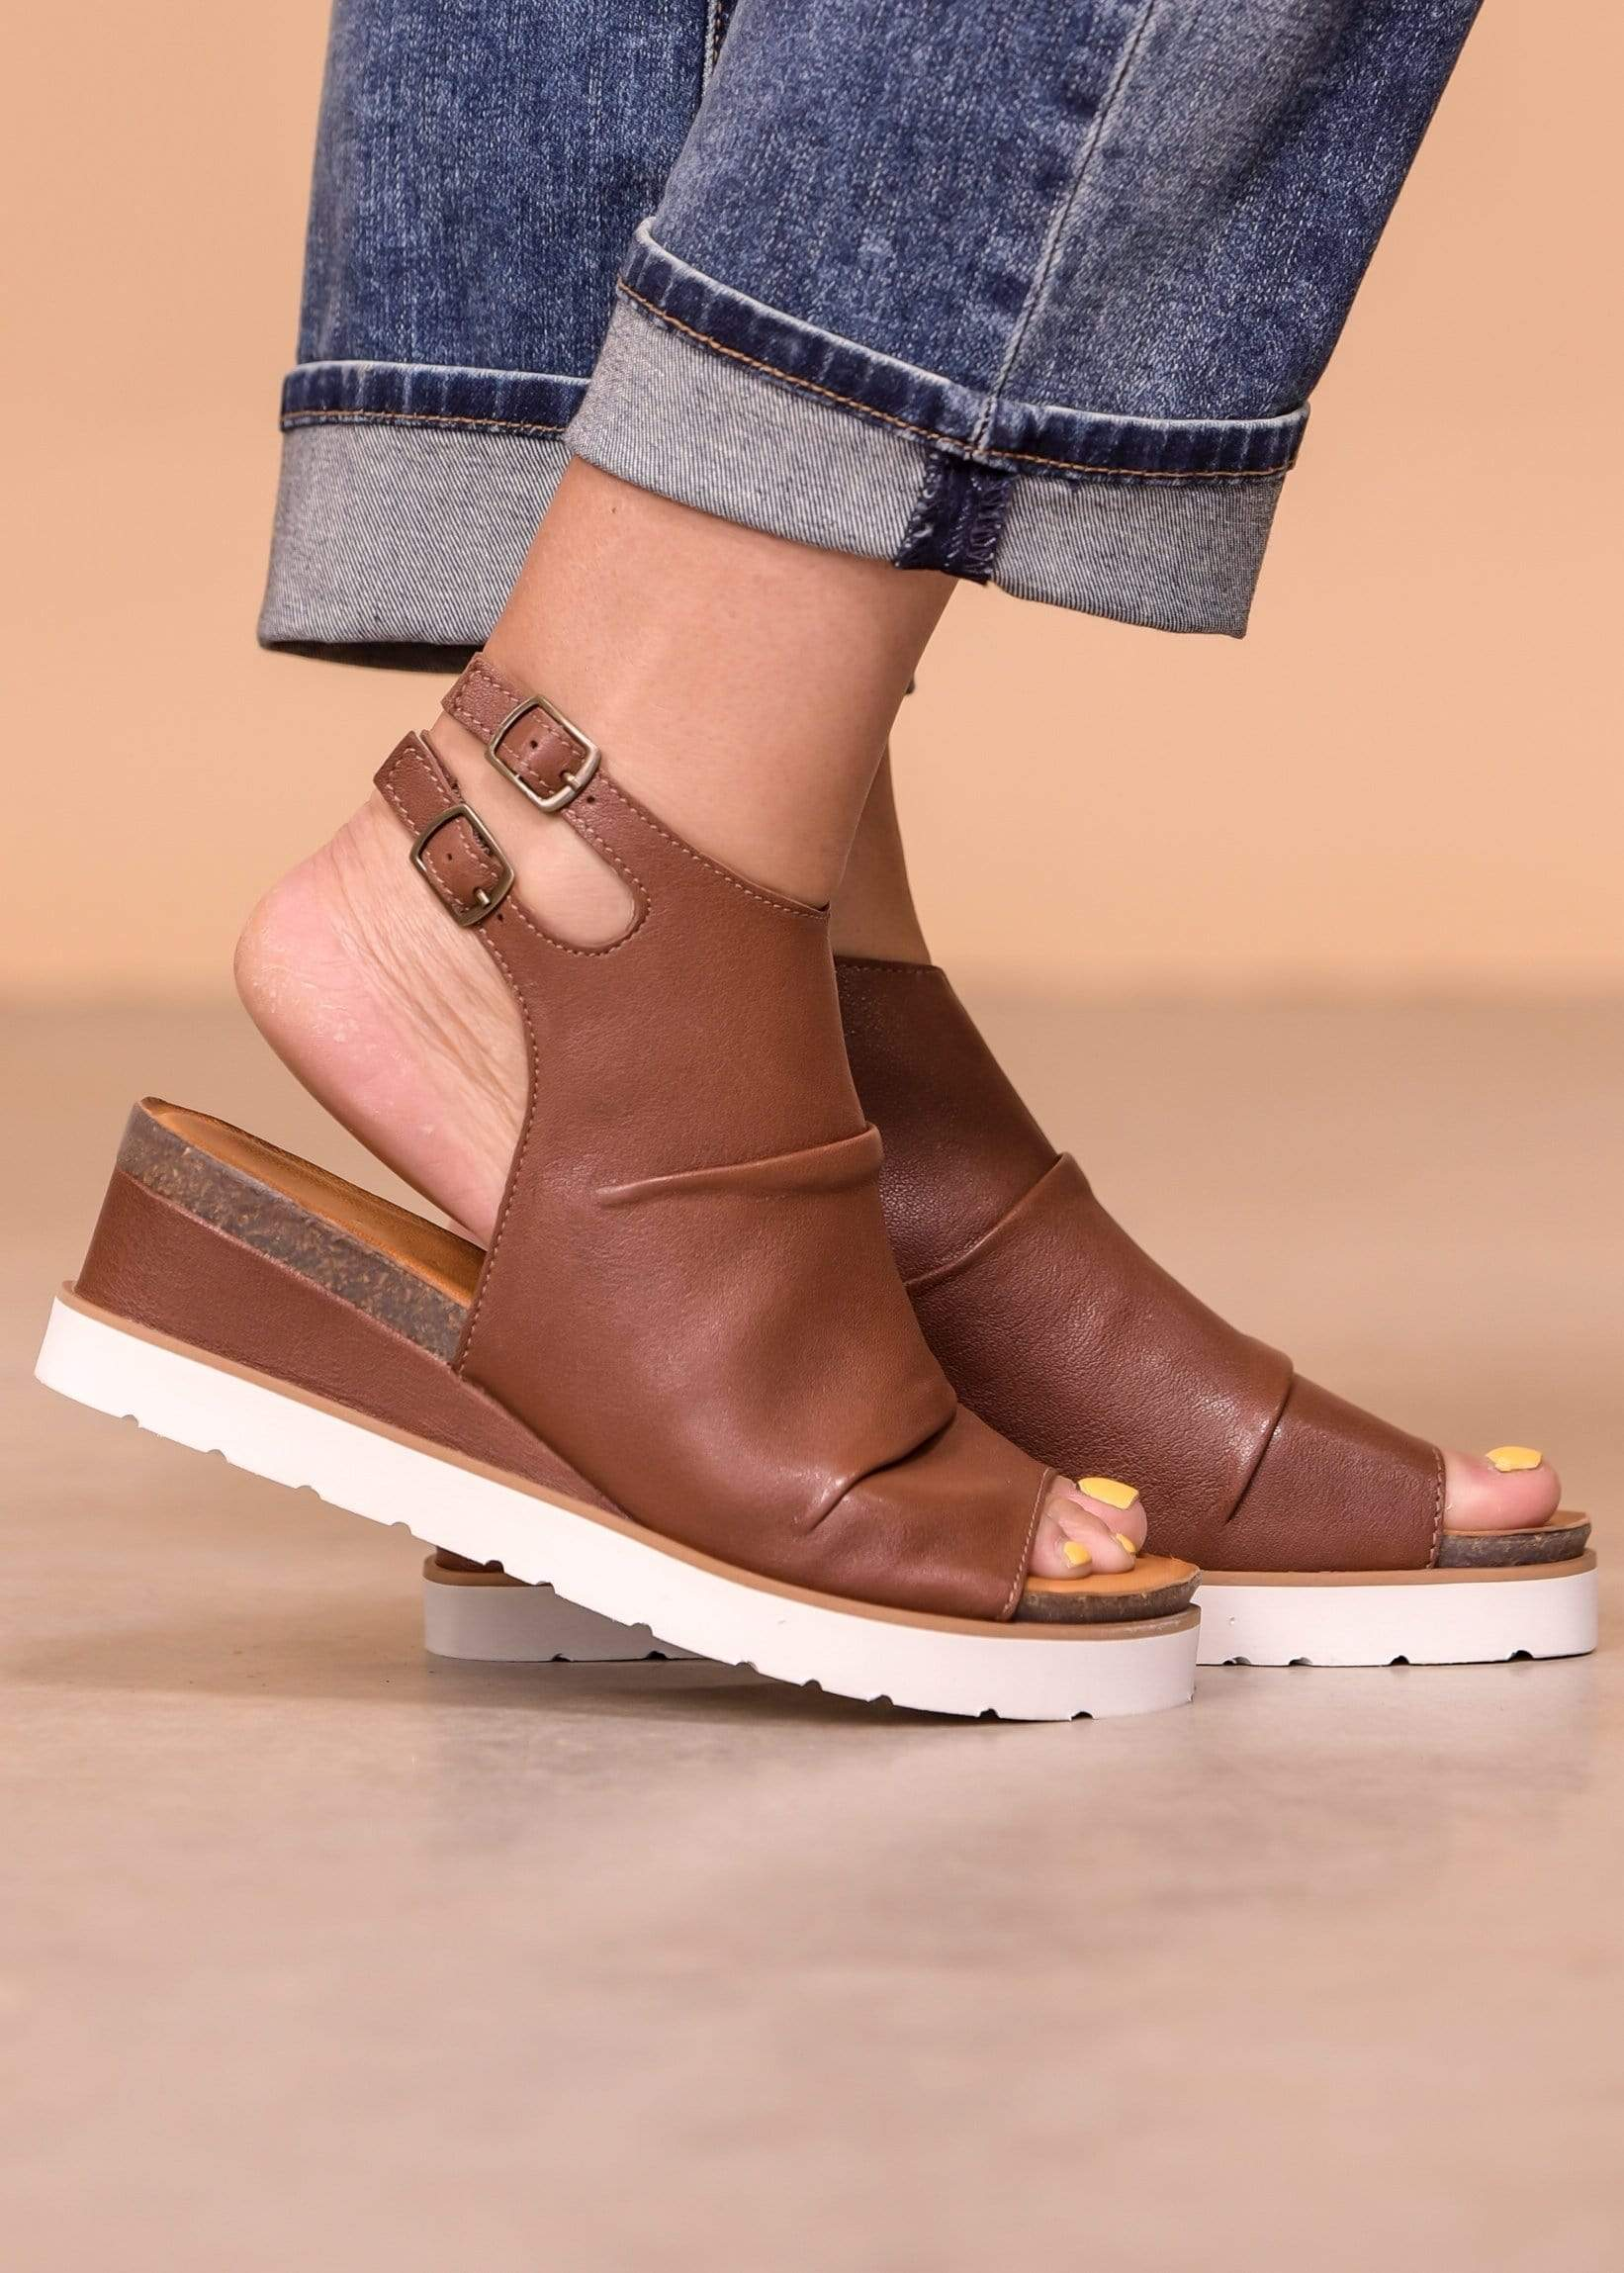 DIBA Leather Sandal - Gee Whiz